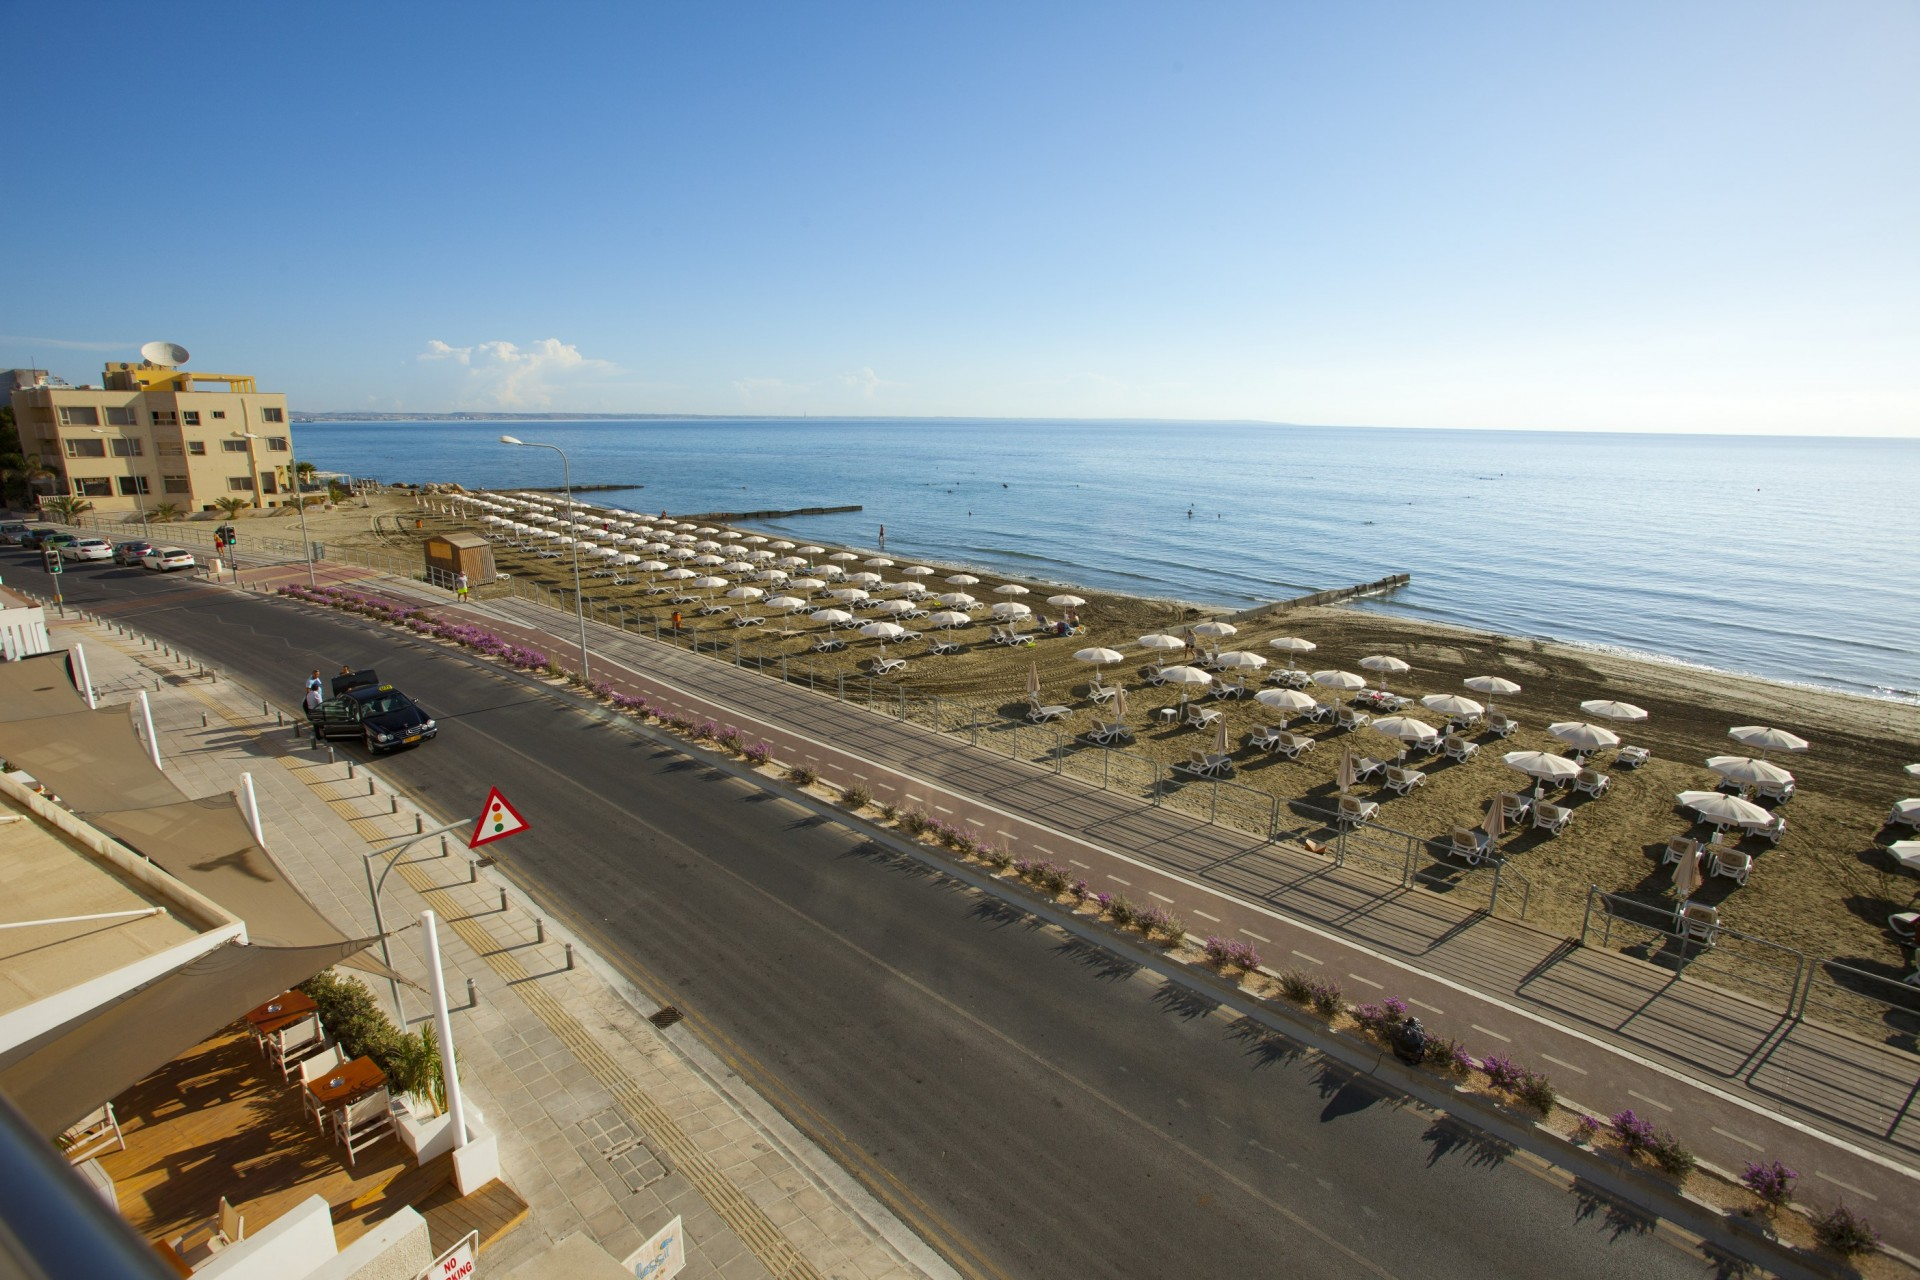 Costantiana-Beach-View-From-Balcony-e1461063776726